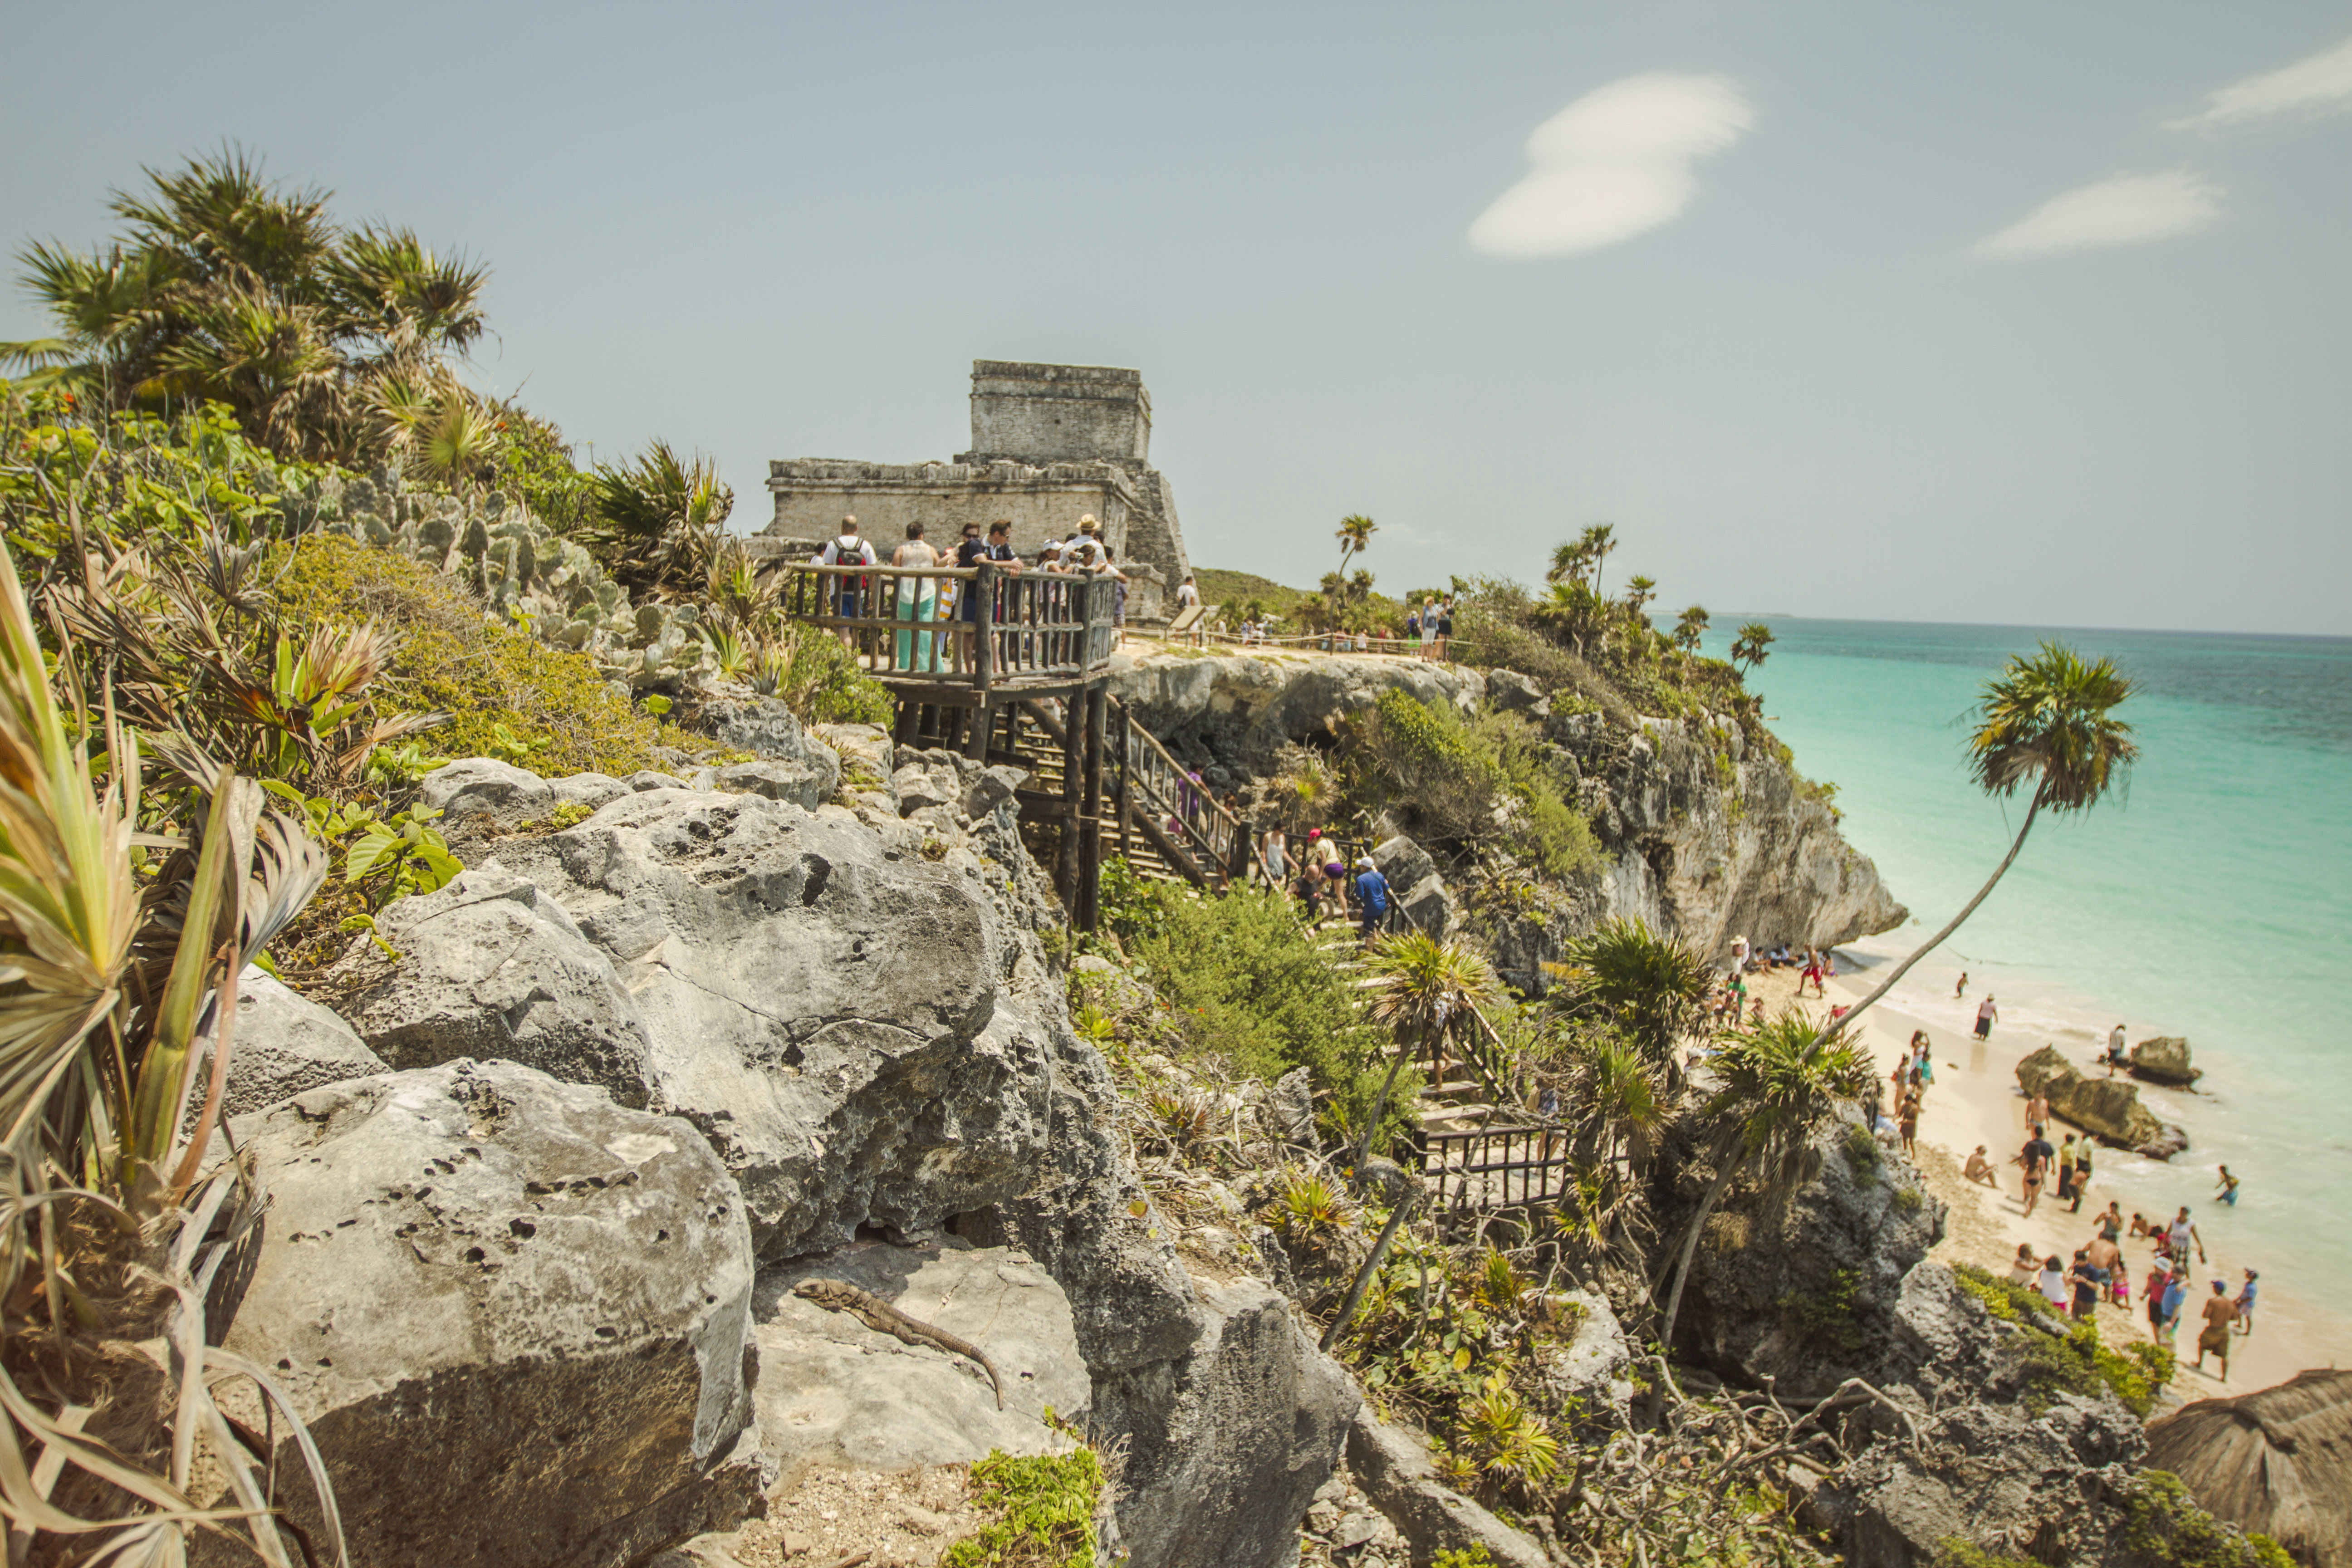 Mexico–Cities, Cuisine & Ruins in Mexico, Central America - G Adventures